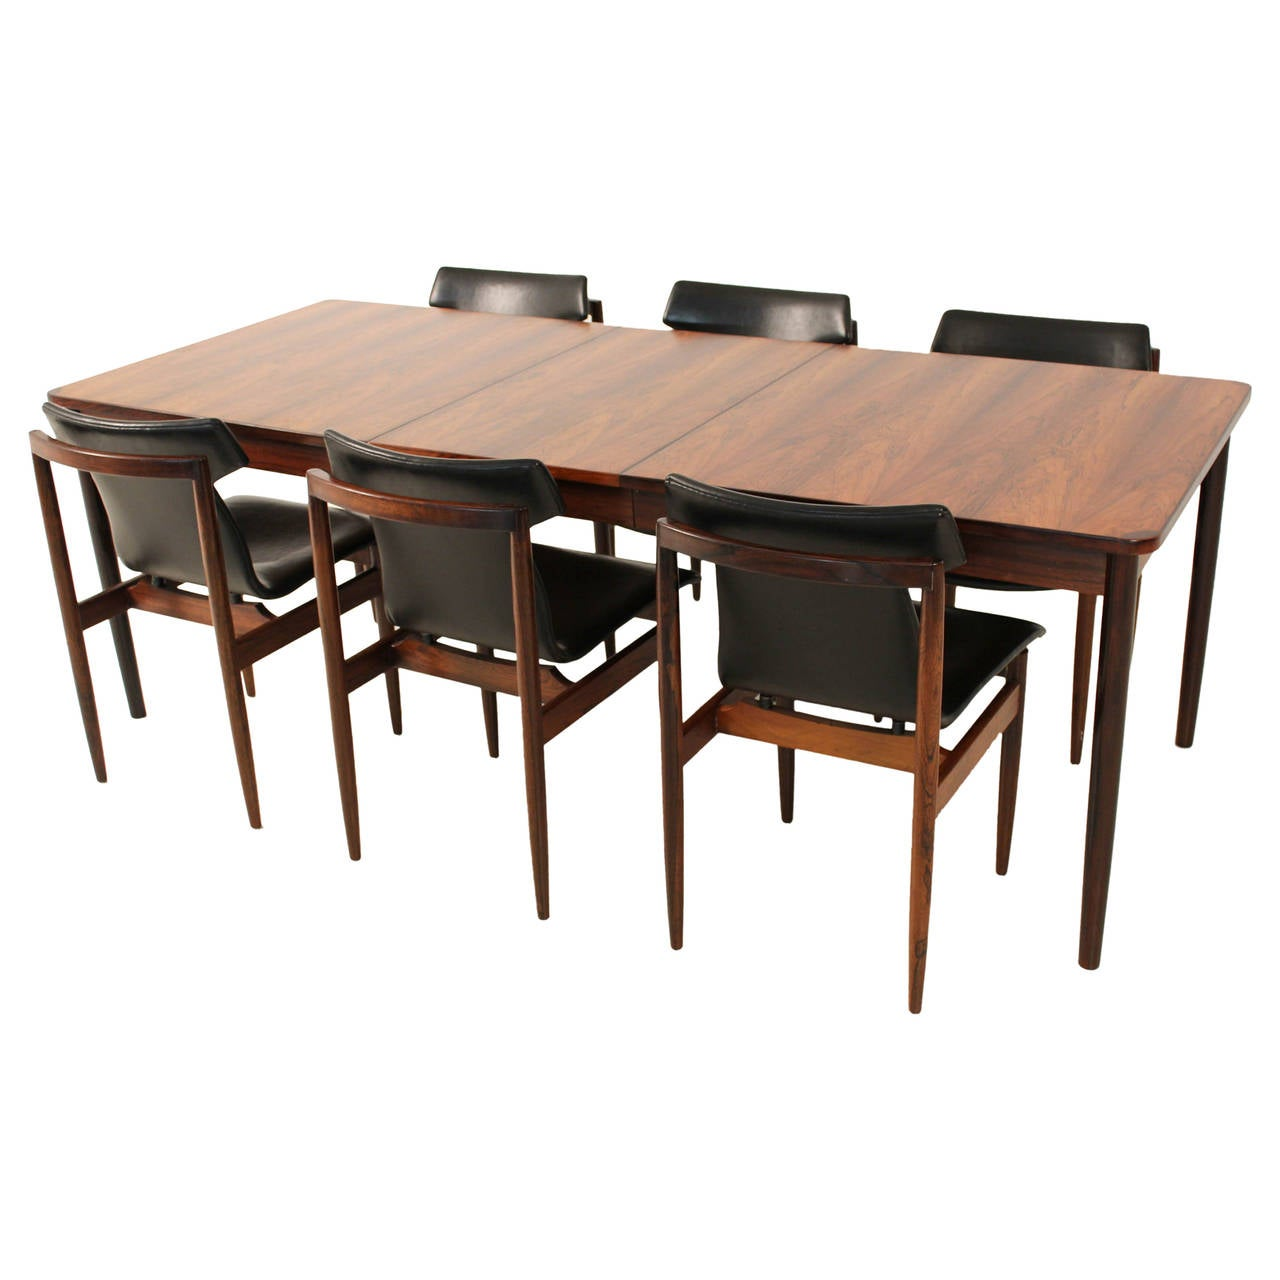 Mid century modern dining table by fristho at 1stdibs for Modern furniture table